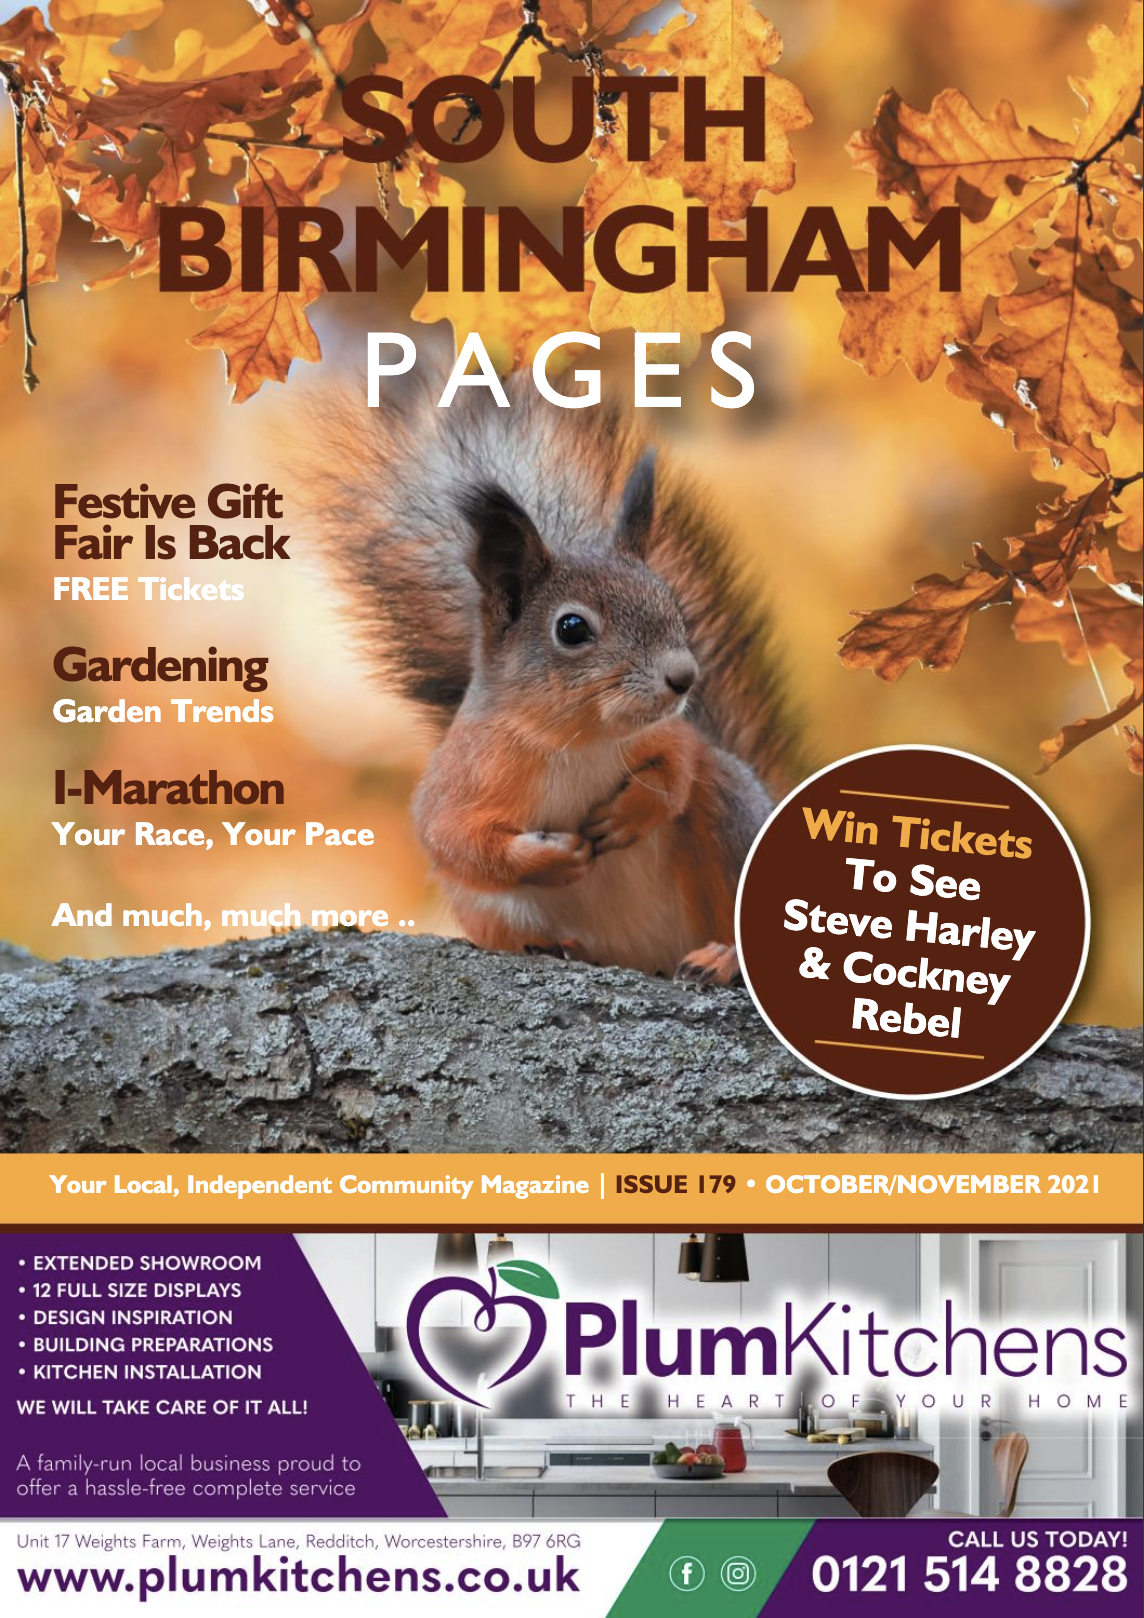 South Birmingham Pages Magazine October 2021